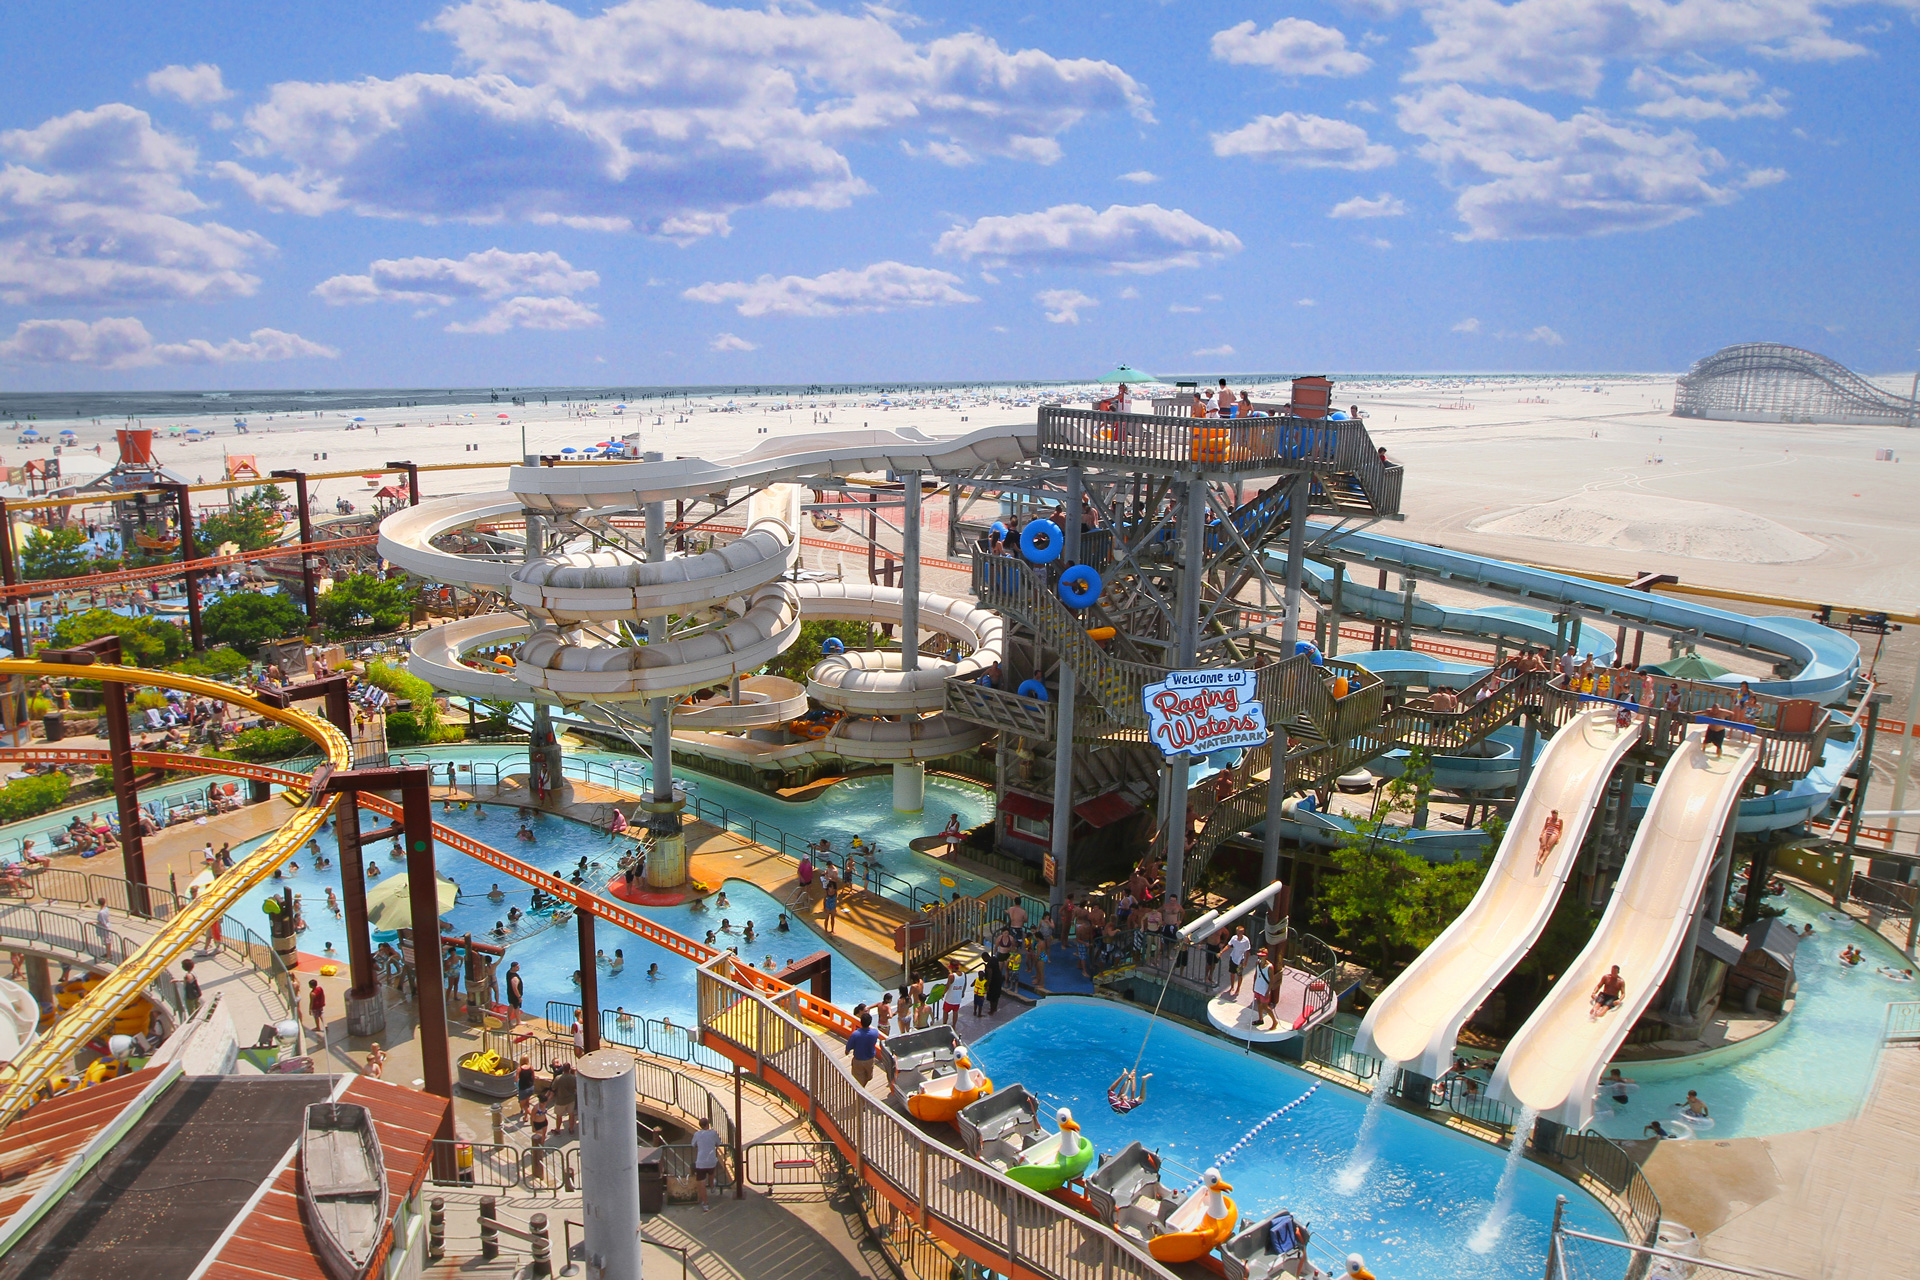 Raging Waters Waterpark | Sheknows.com